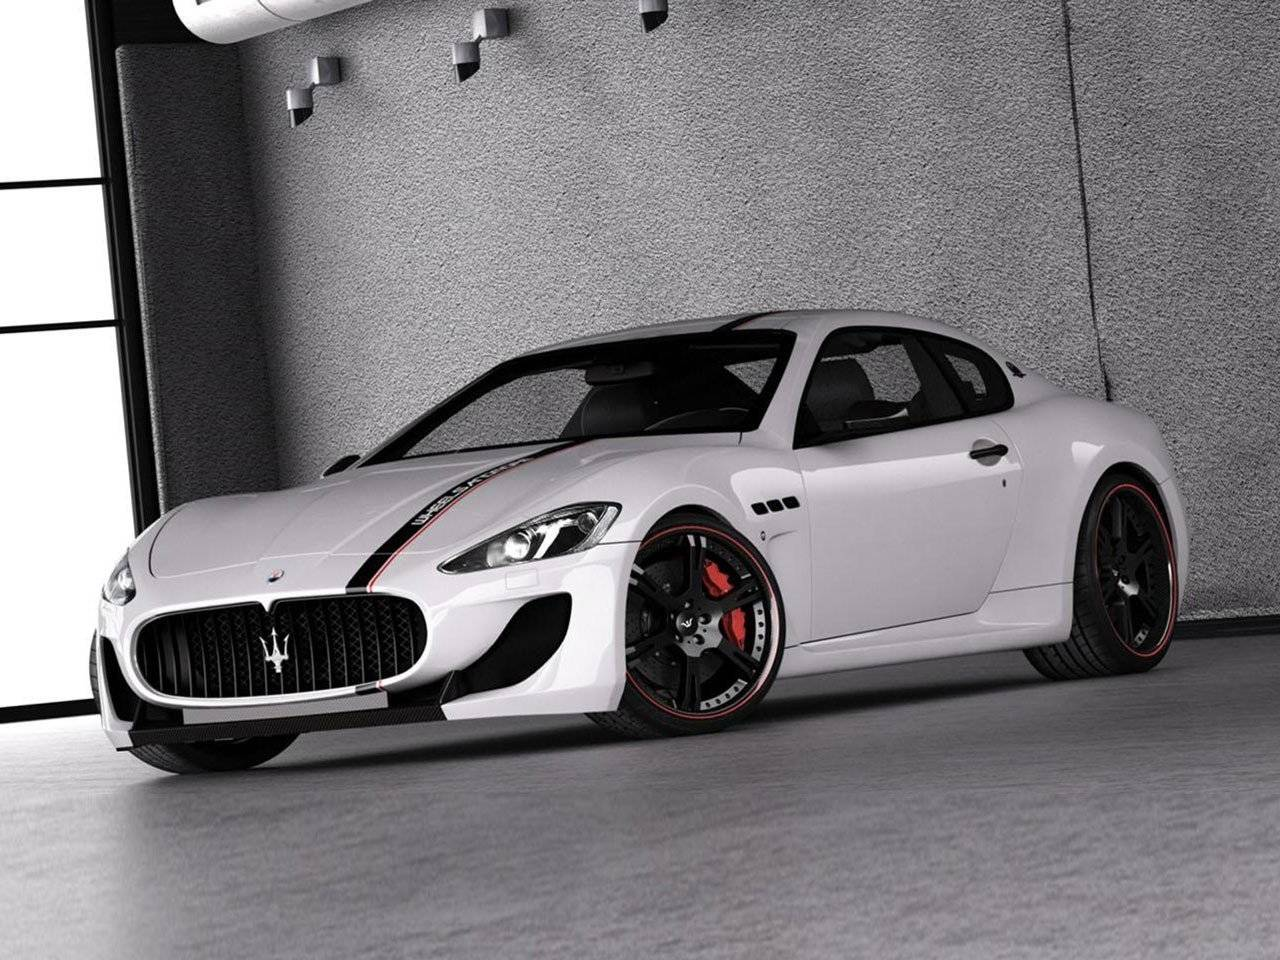 duivelse maserati mc stradale van wheelsandmore tuning styling. Black Bedroom Furniture Sets. Home Design Ideas